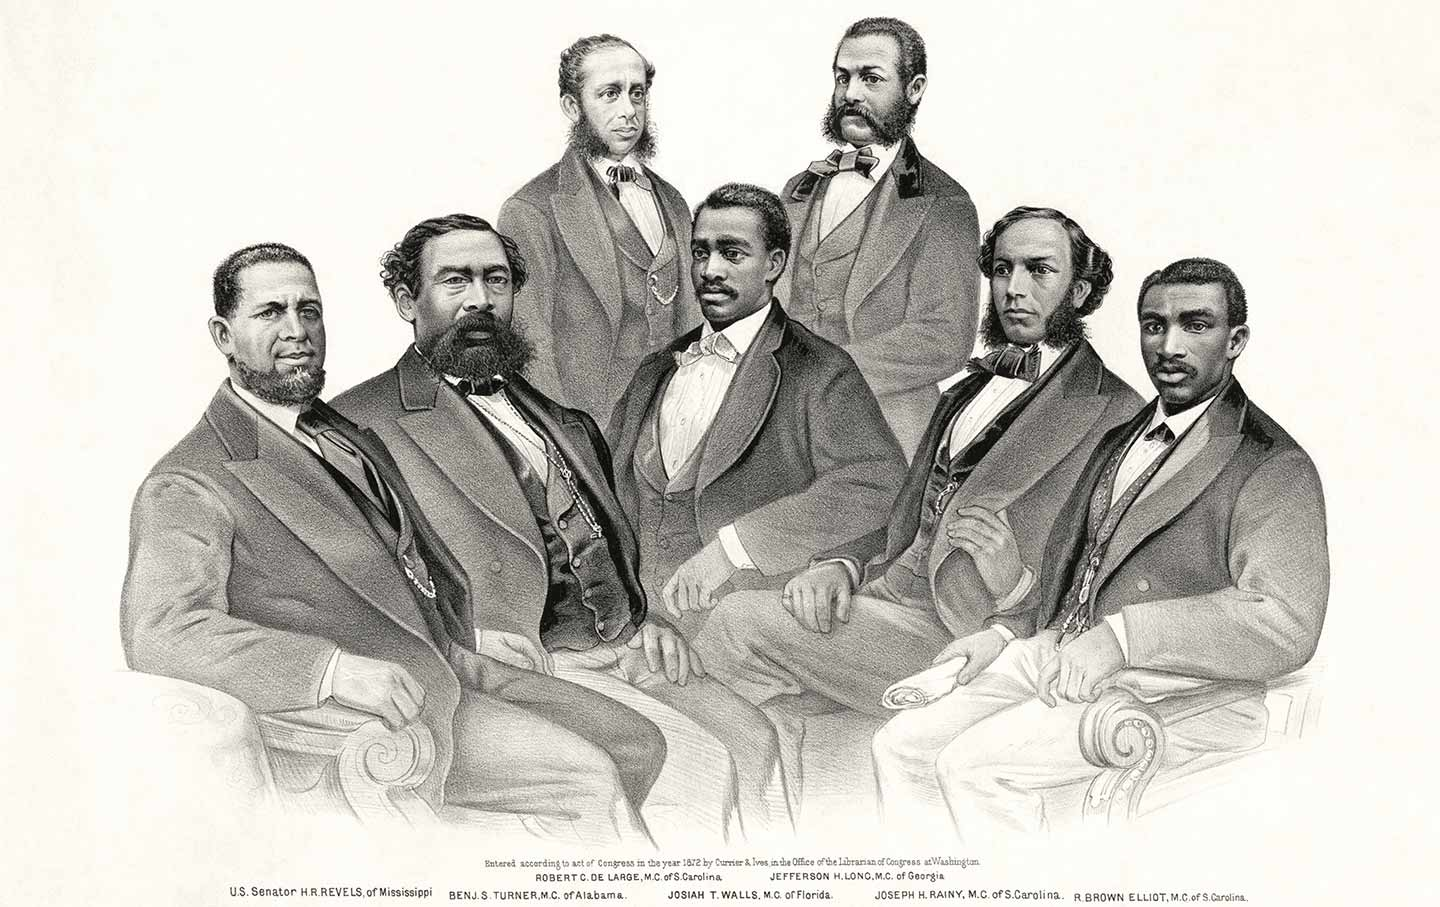 First black Senator and representatives